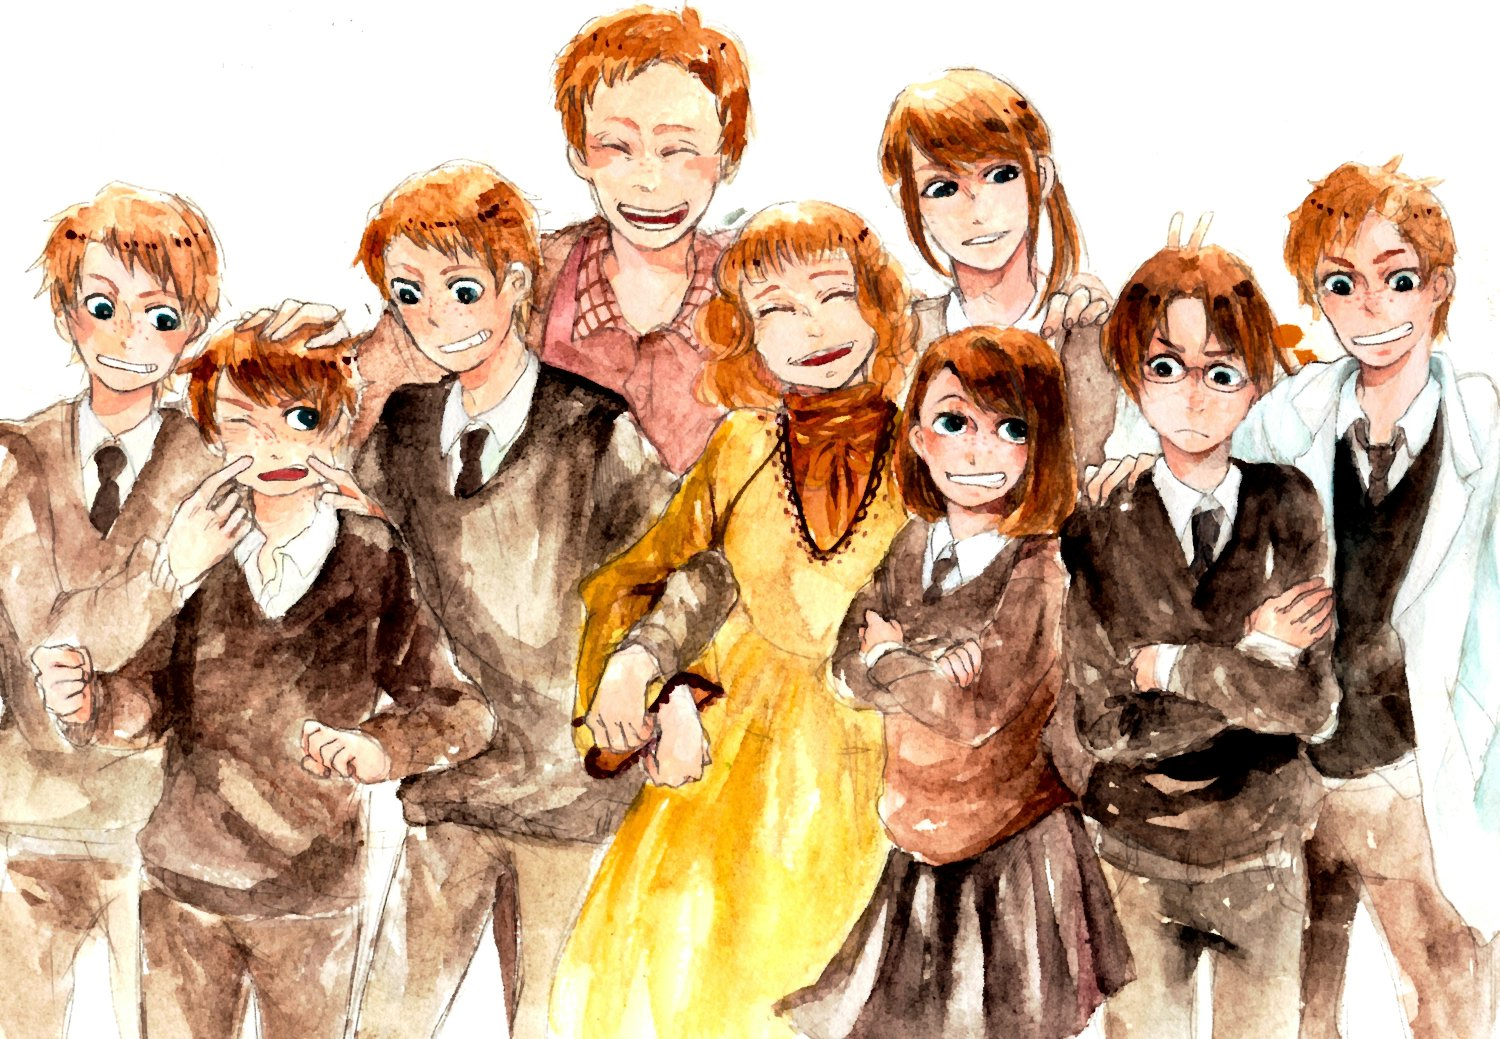 Weasley Family - Harry Potter - Image #712156 - Zerochan ... Weasley Family Anime